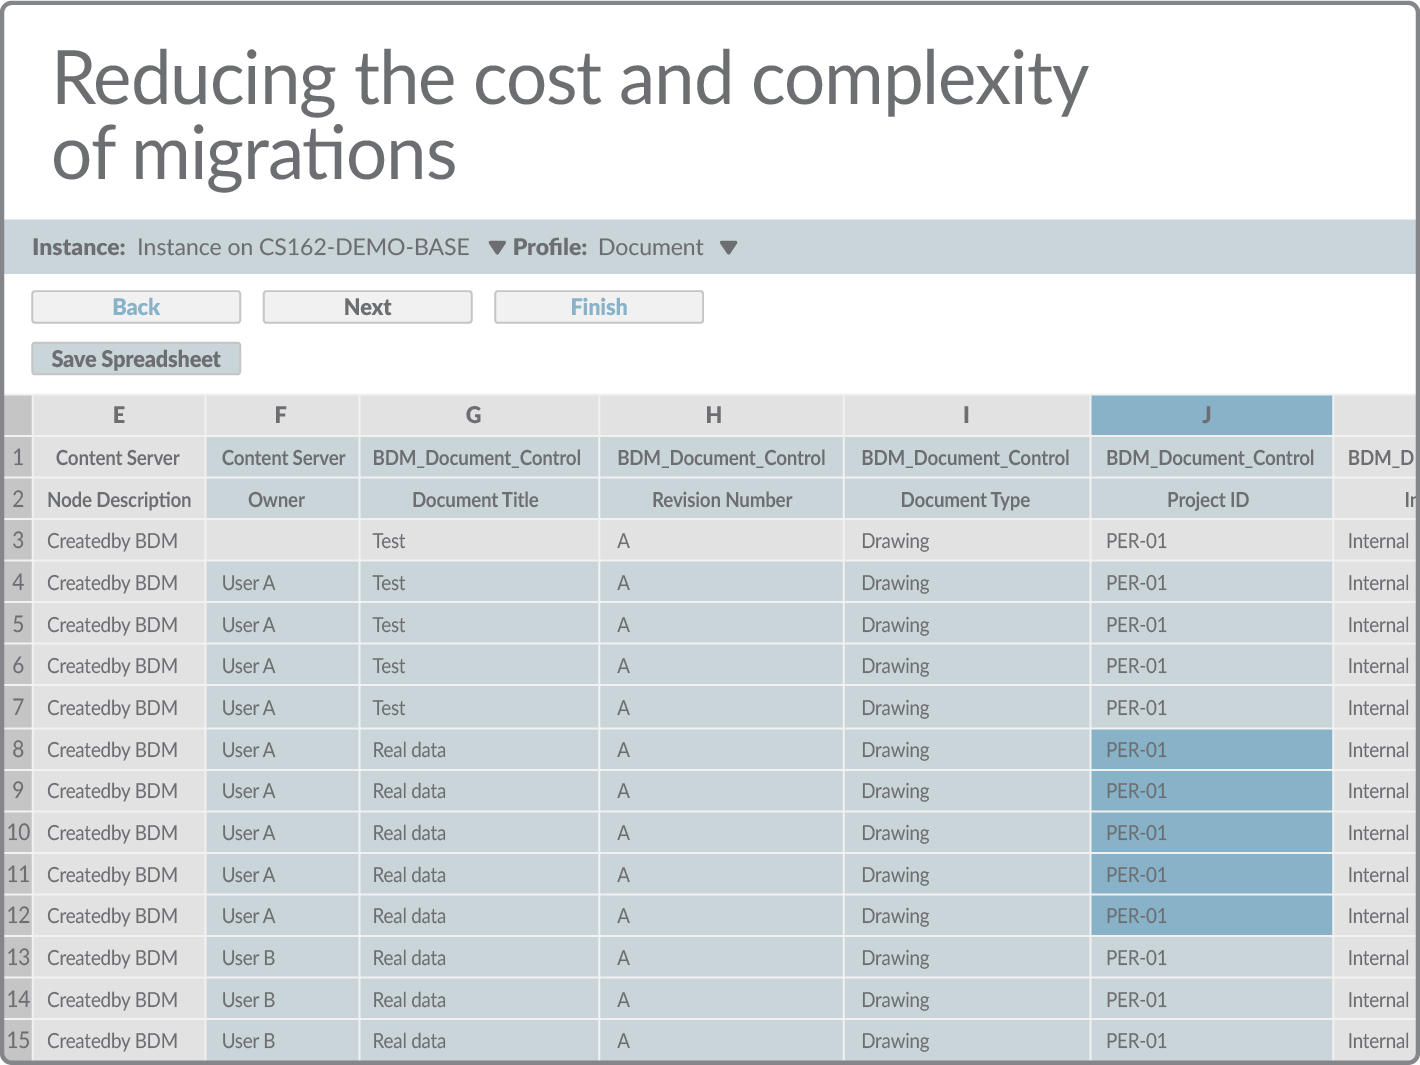 Reducing the cost and complexity of migrations